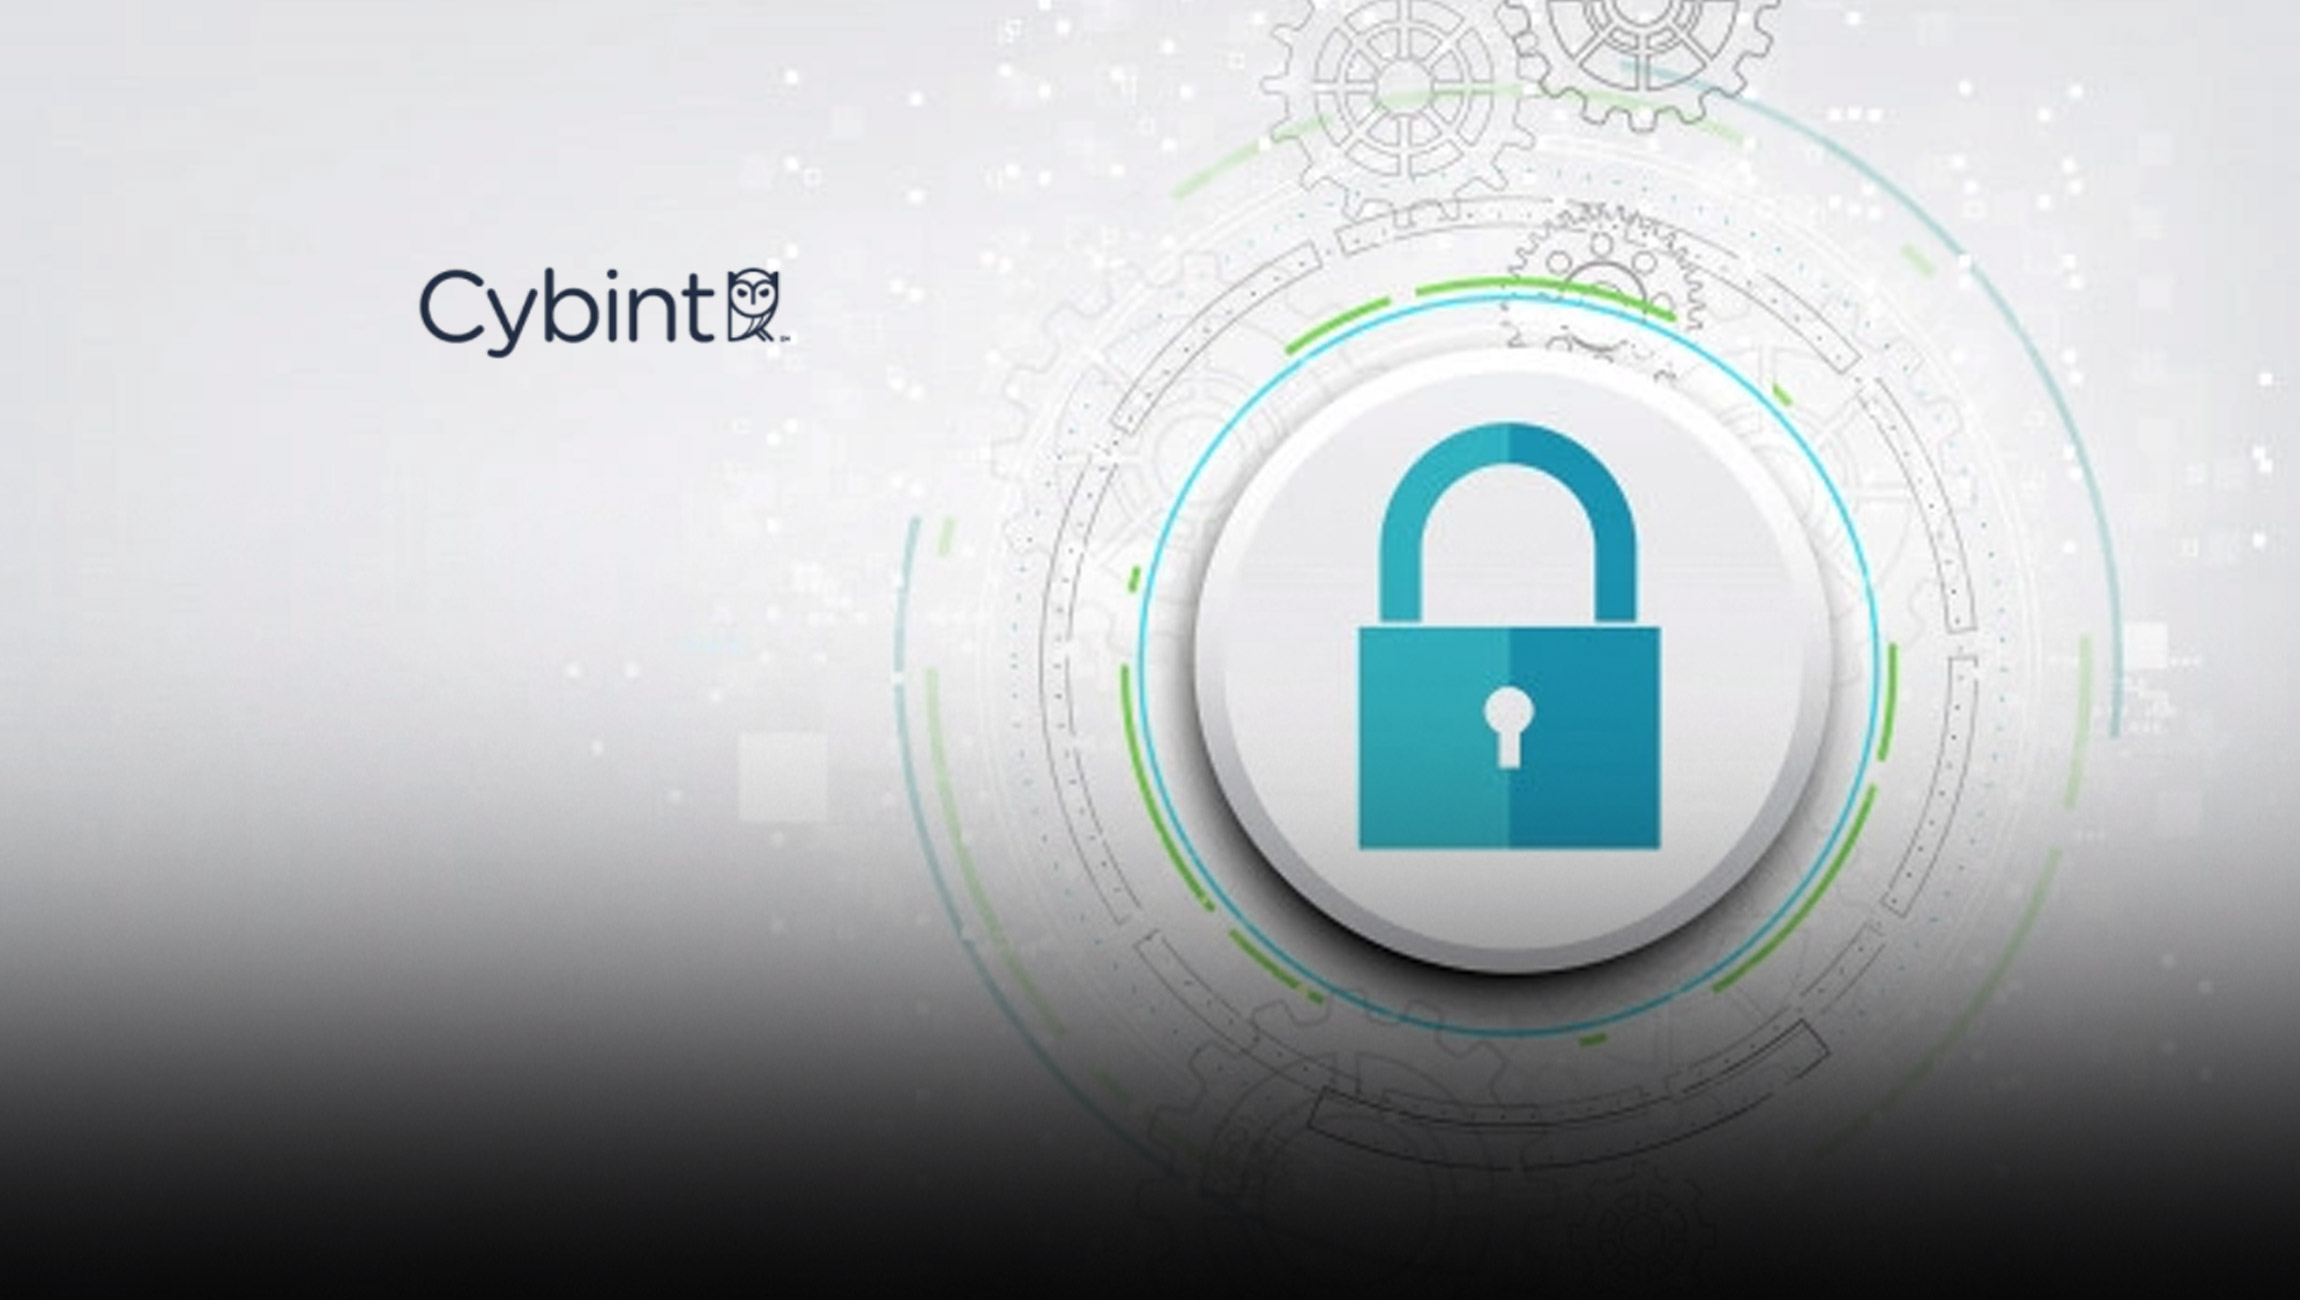 Indian Institute of Technology Jodhpur and WhizHack Technologies launch India's 1st Dual Certificate in Cyber Defense Supported by Israeli Edtech Leader Cybint